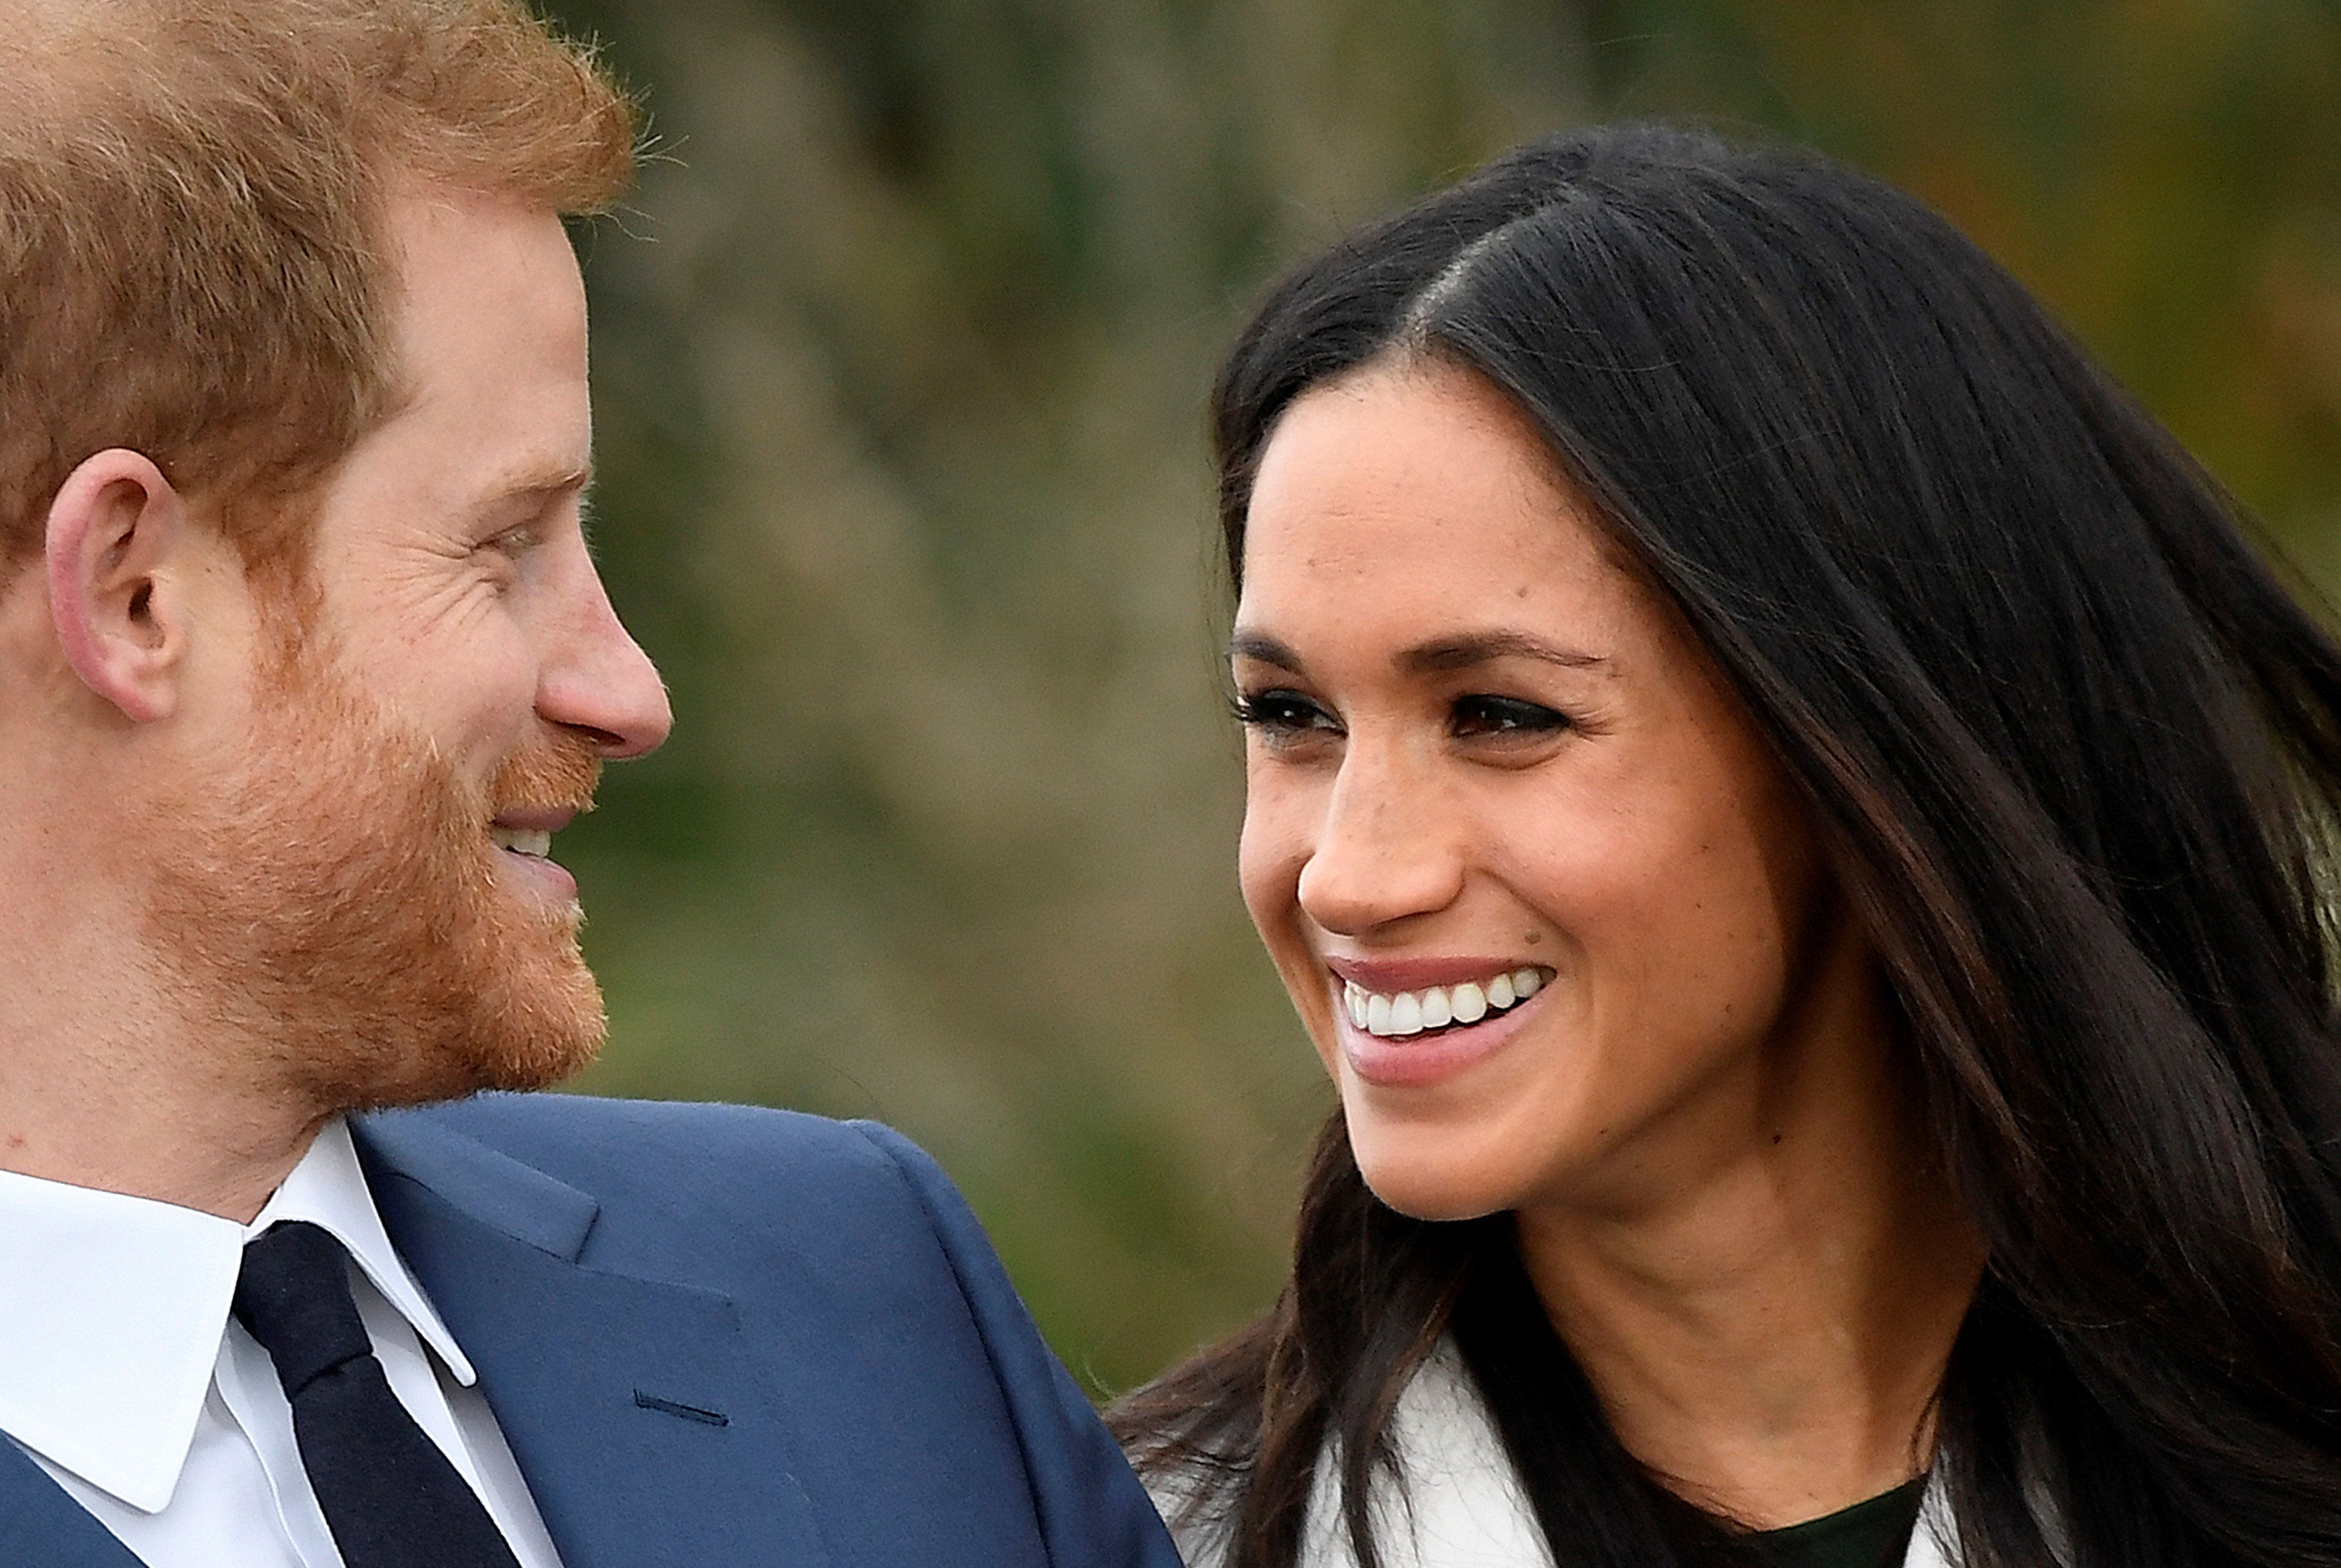 Actress Meghan Markle will reportedly be baptized into the Church of England, the Telegraph reports.